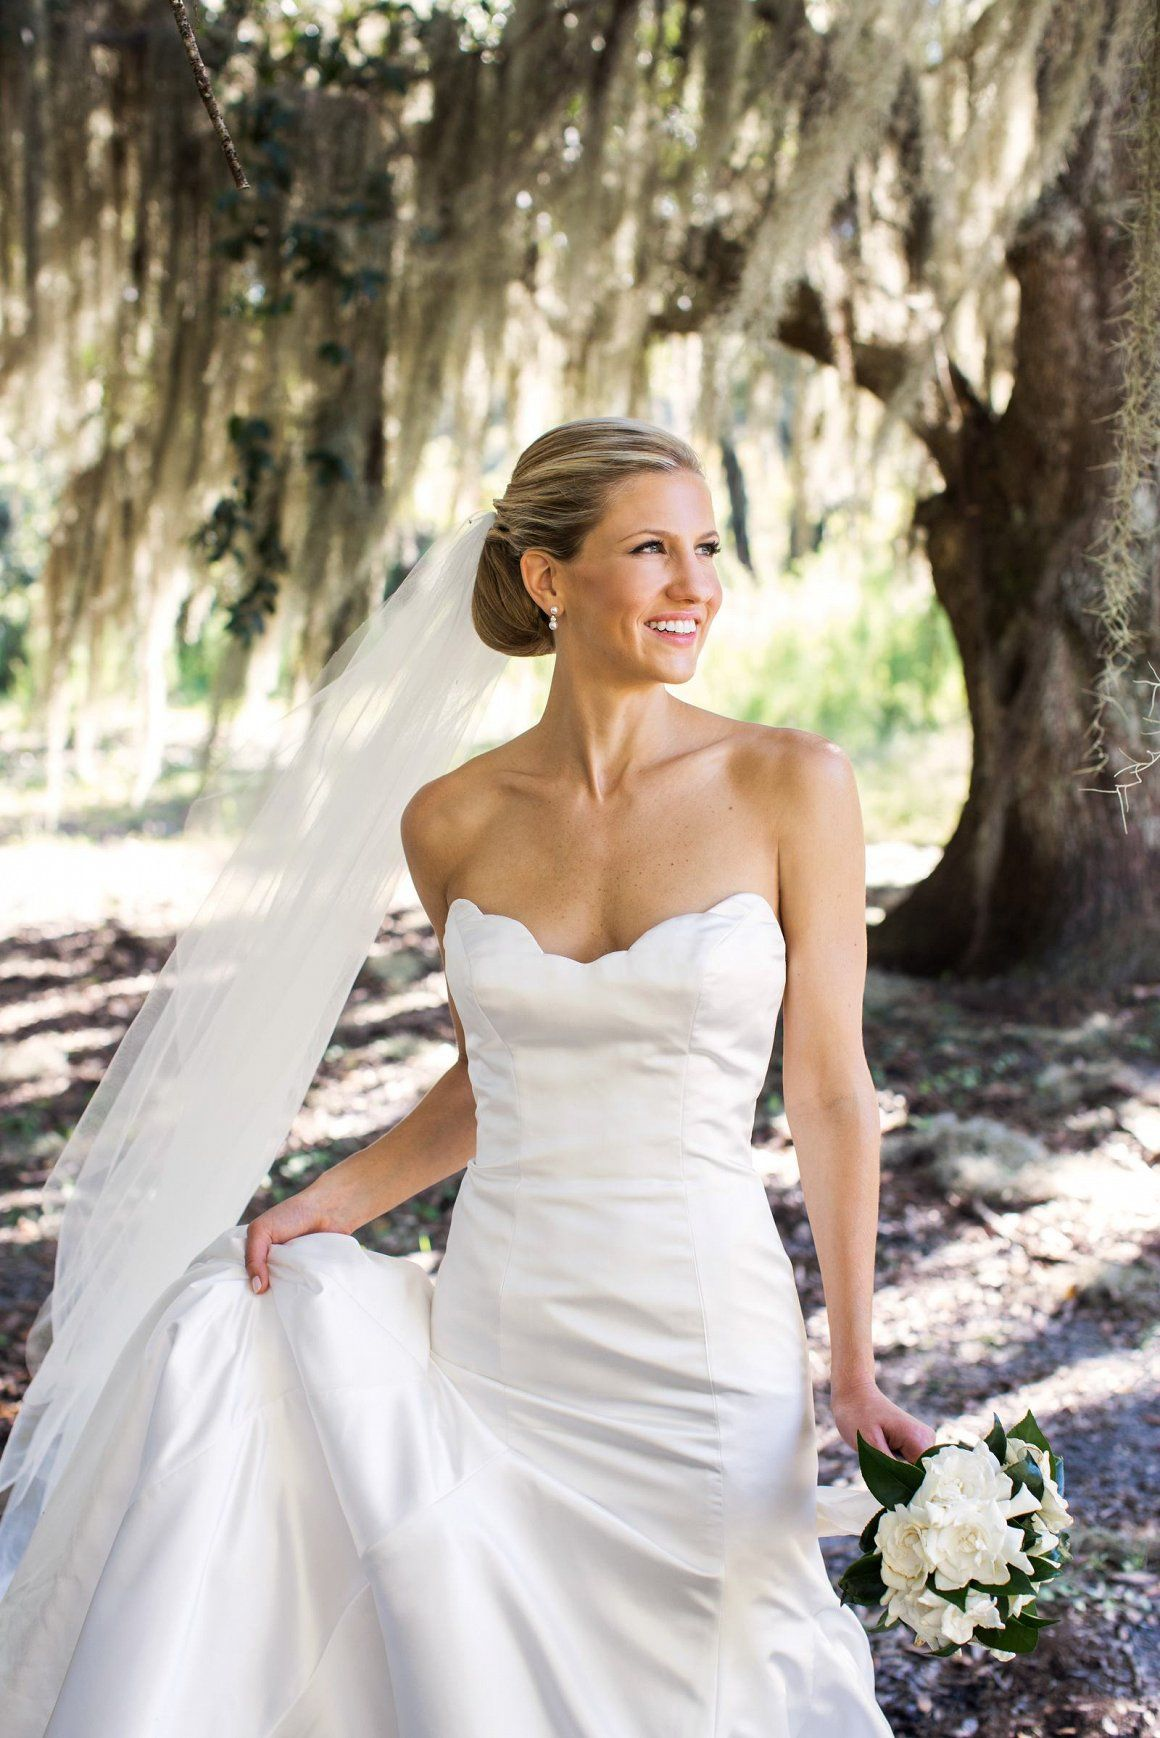 Southern beauty everywhere at this Cabin Bluff wedding in